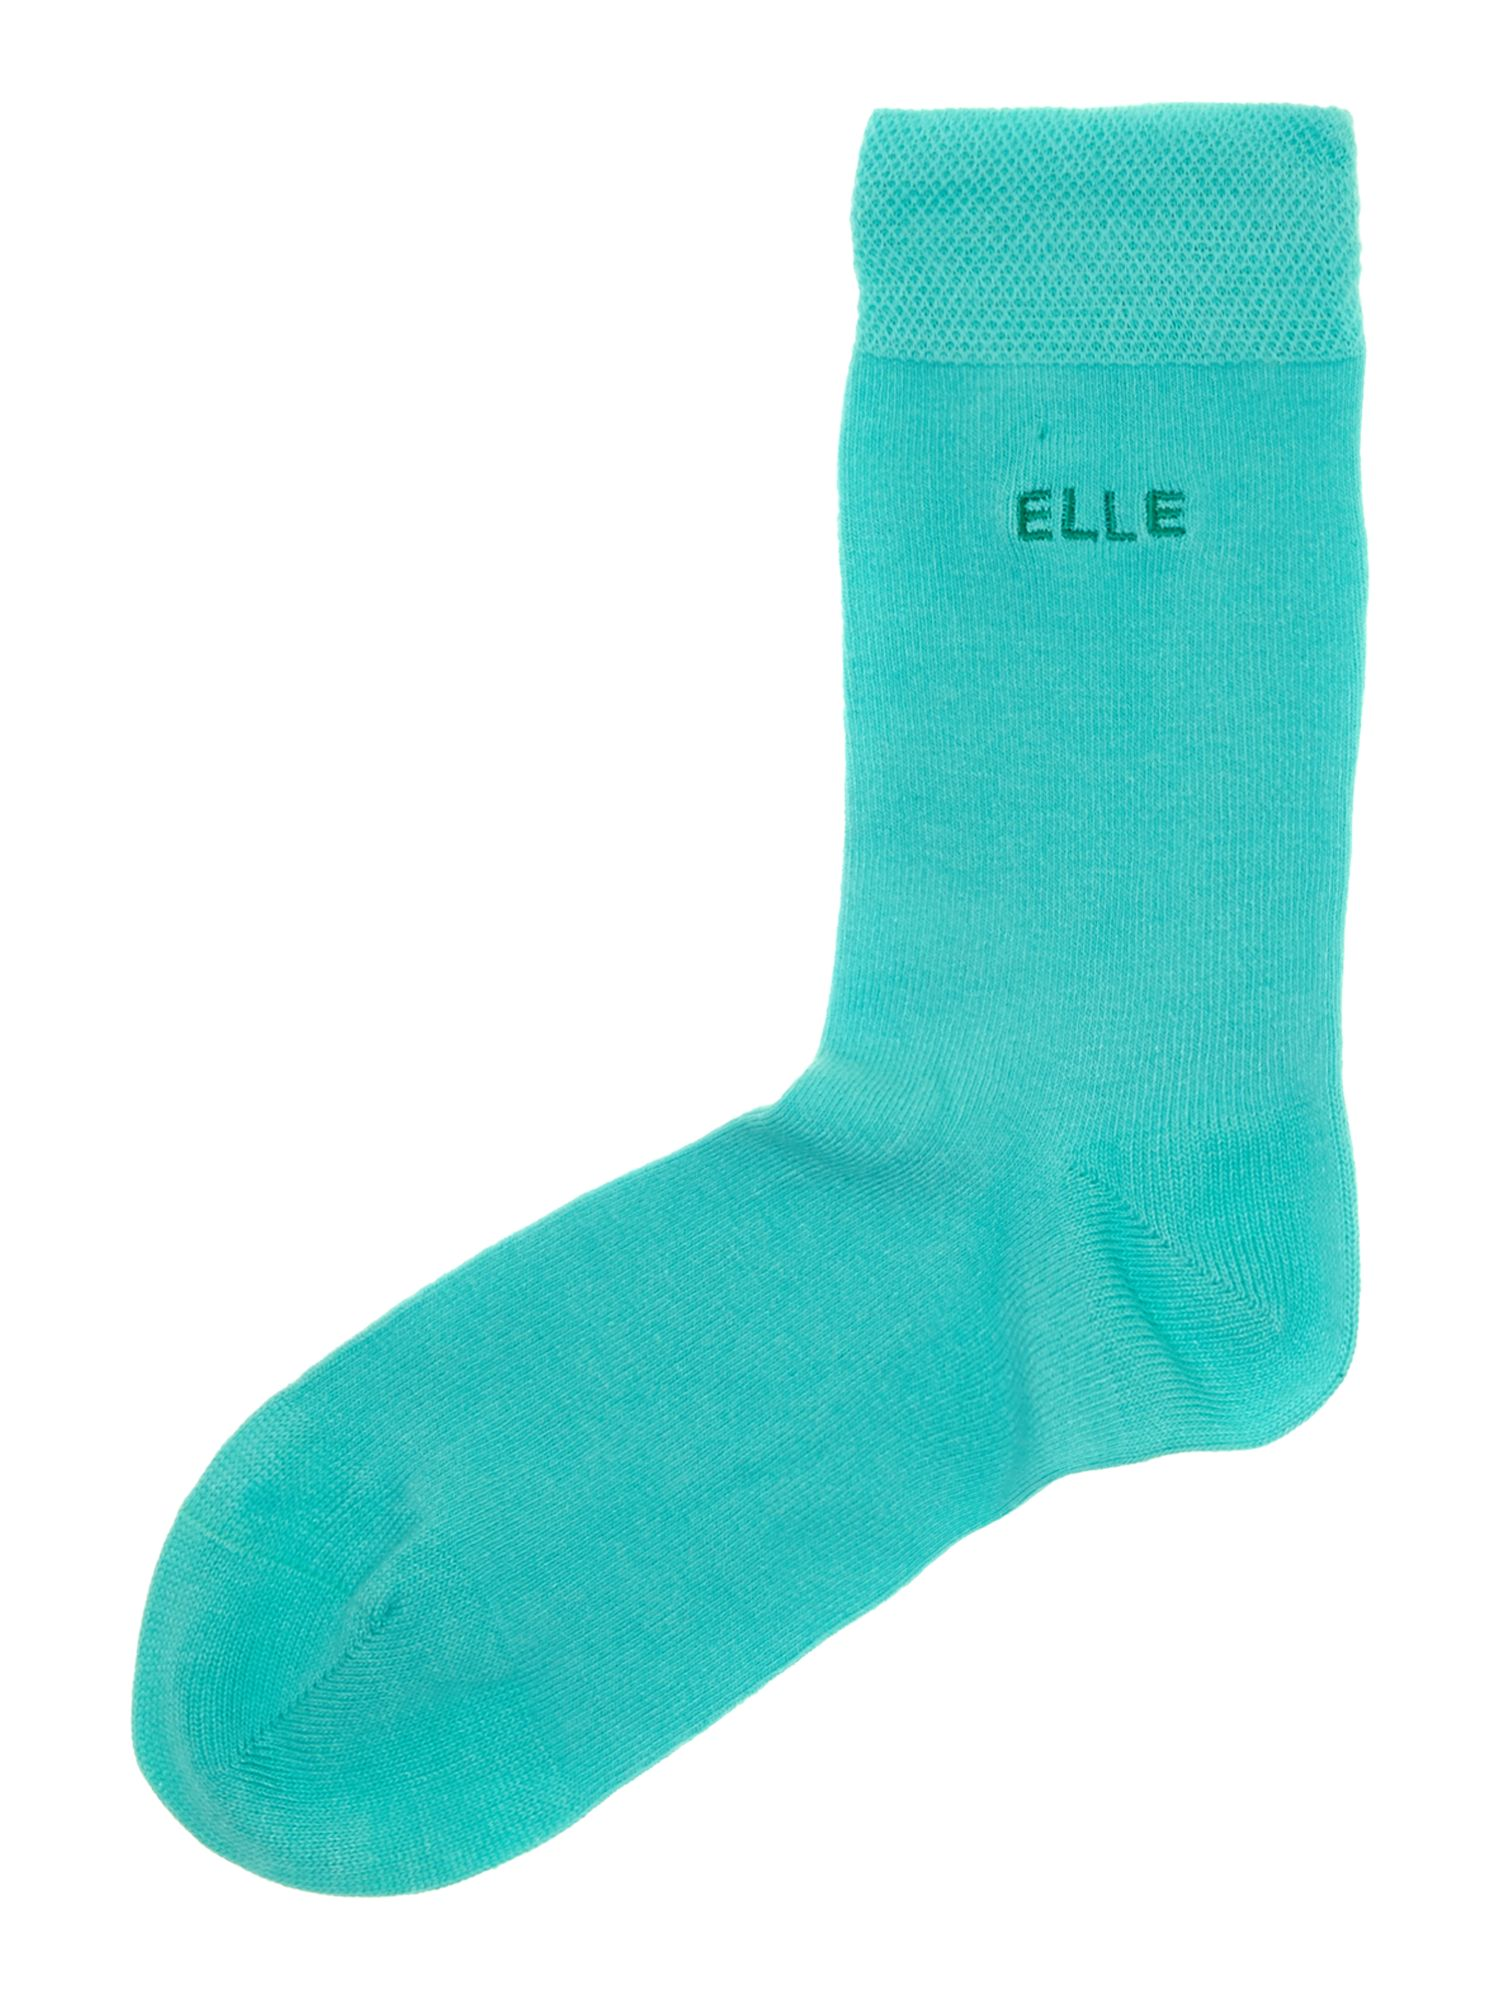 2PP Plain bamboo socks